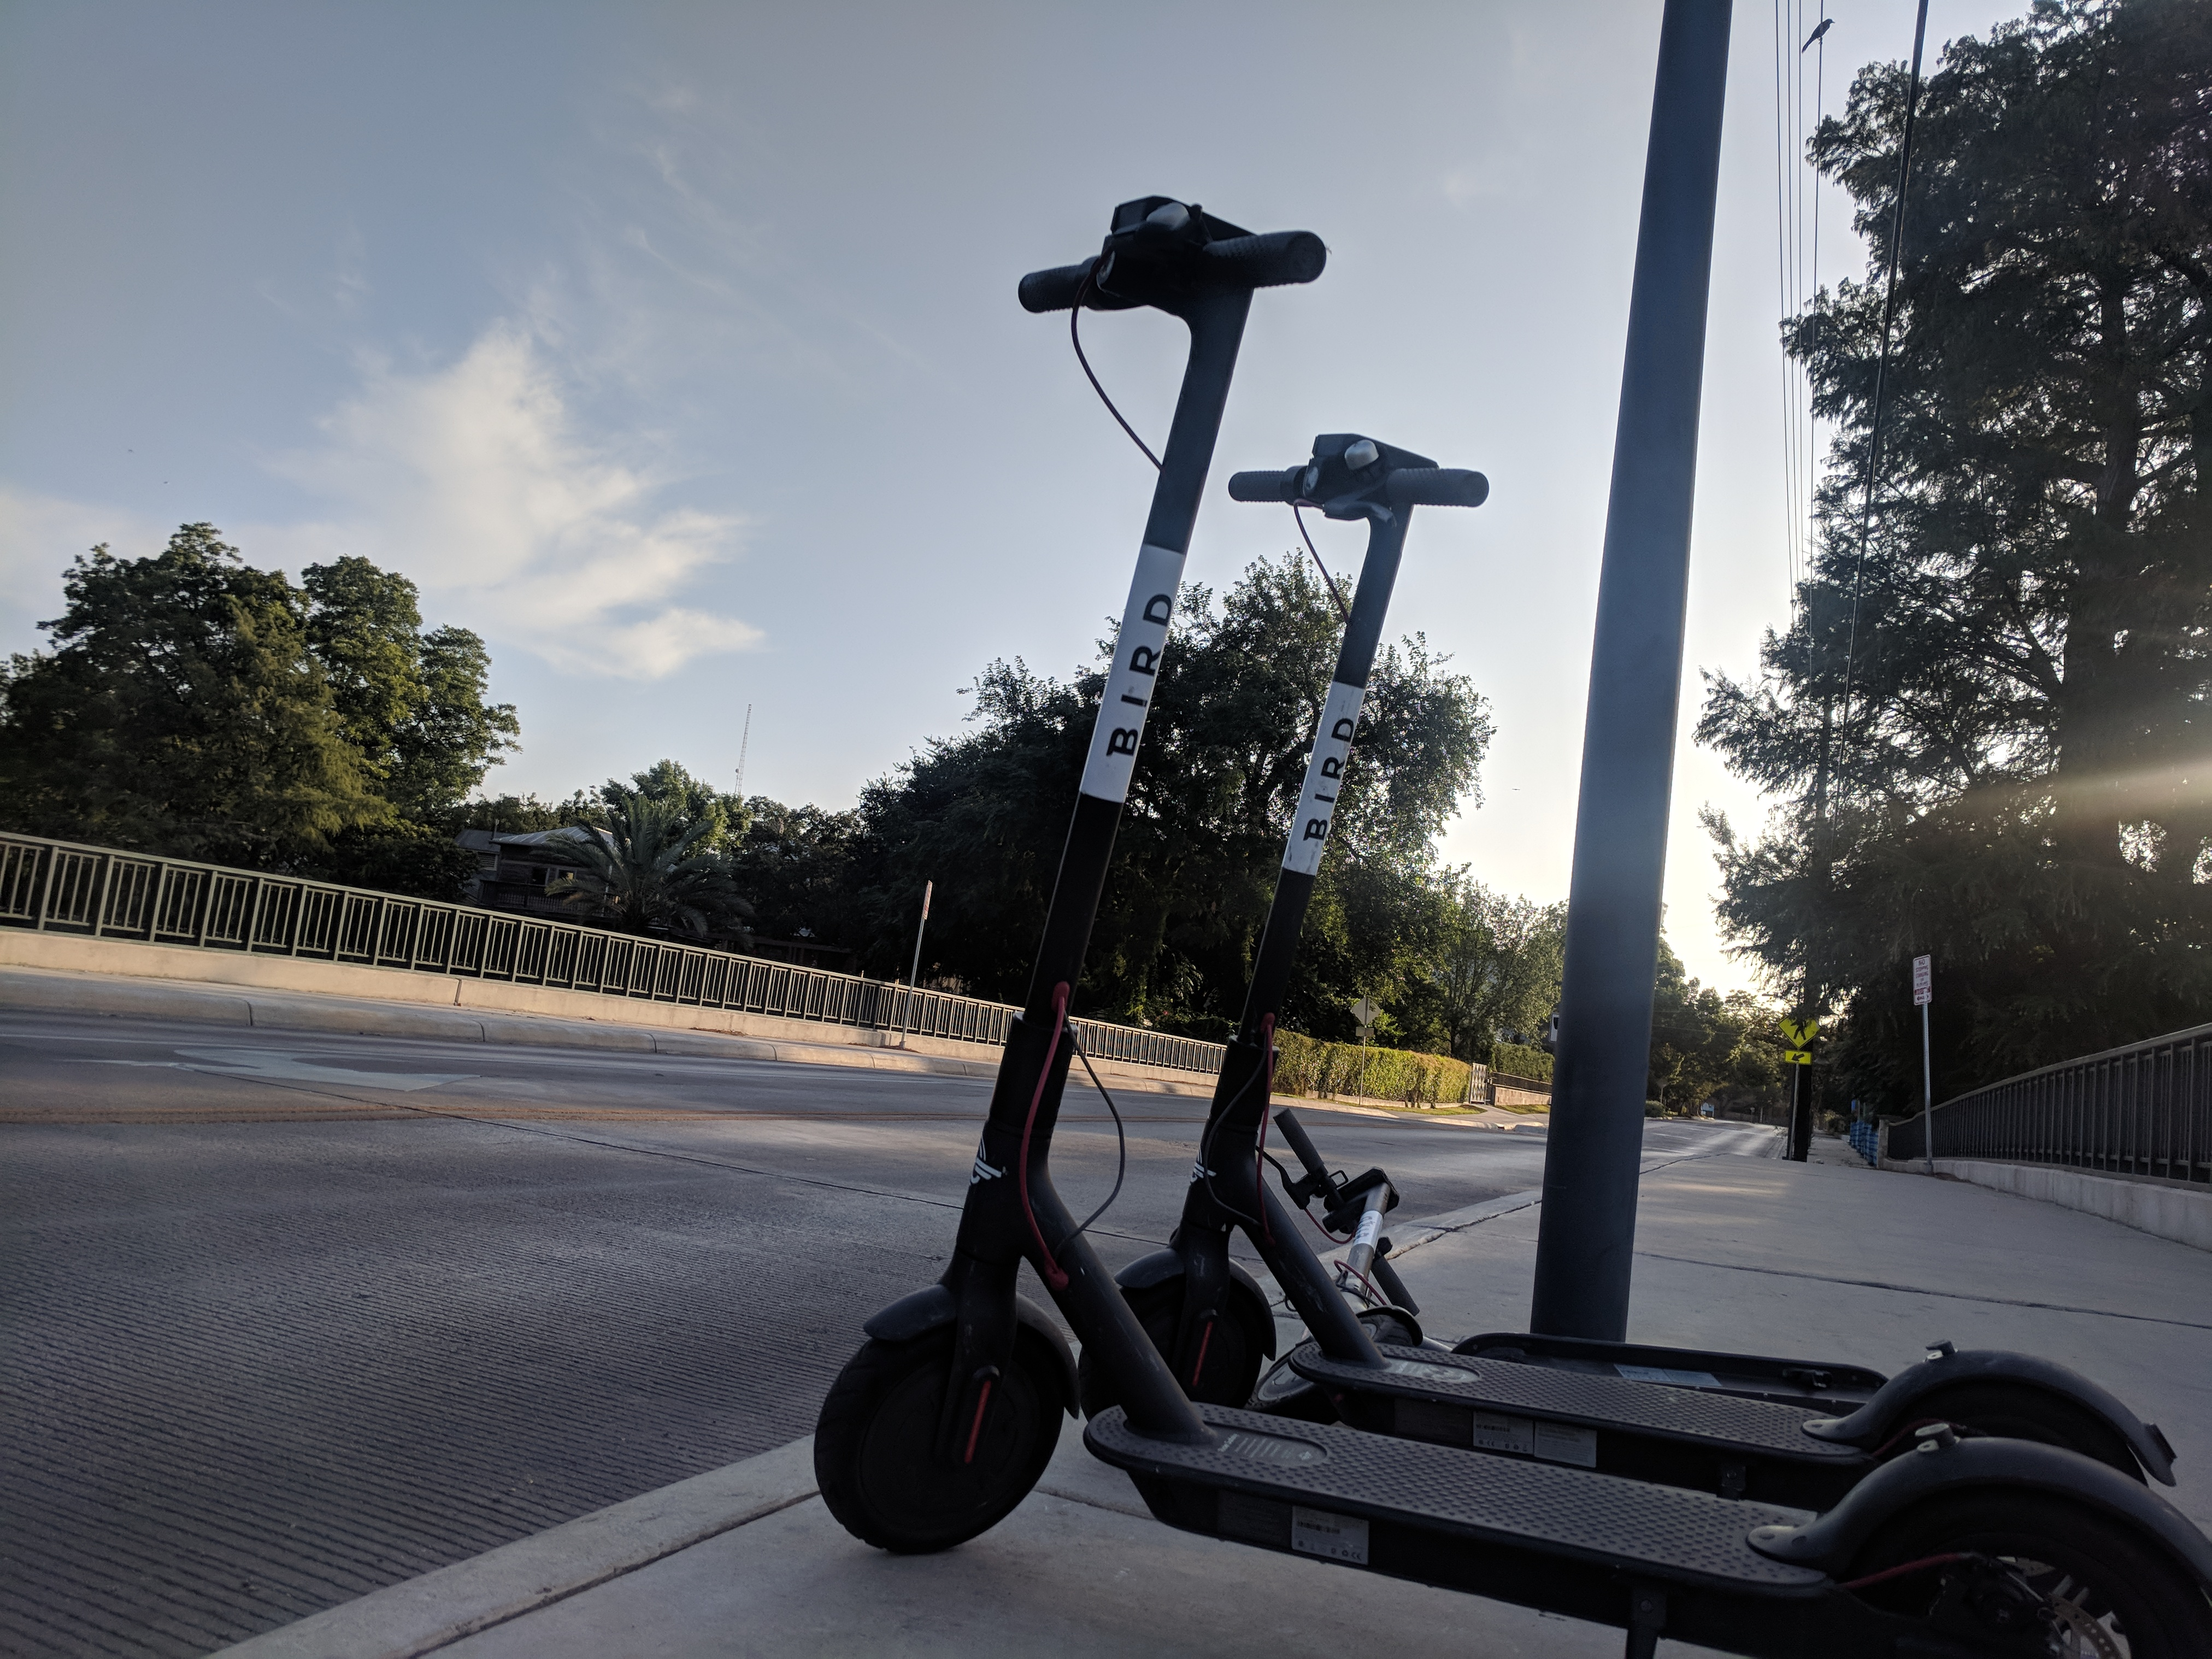 San Antonio Using Light Touch In Regulating Electric Scooters